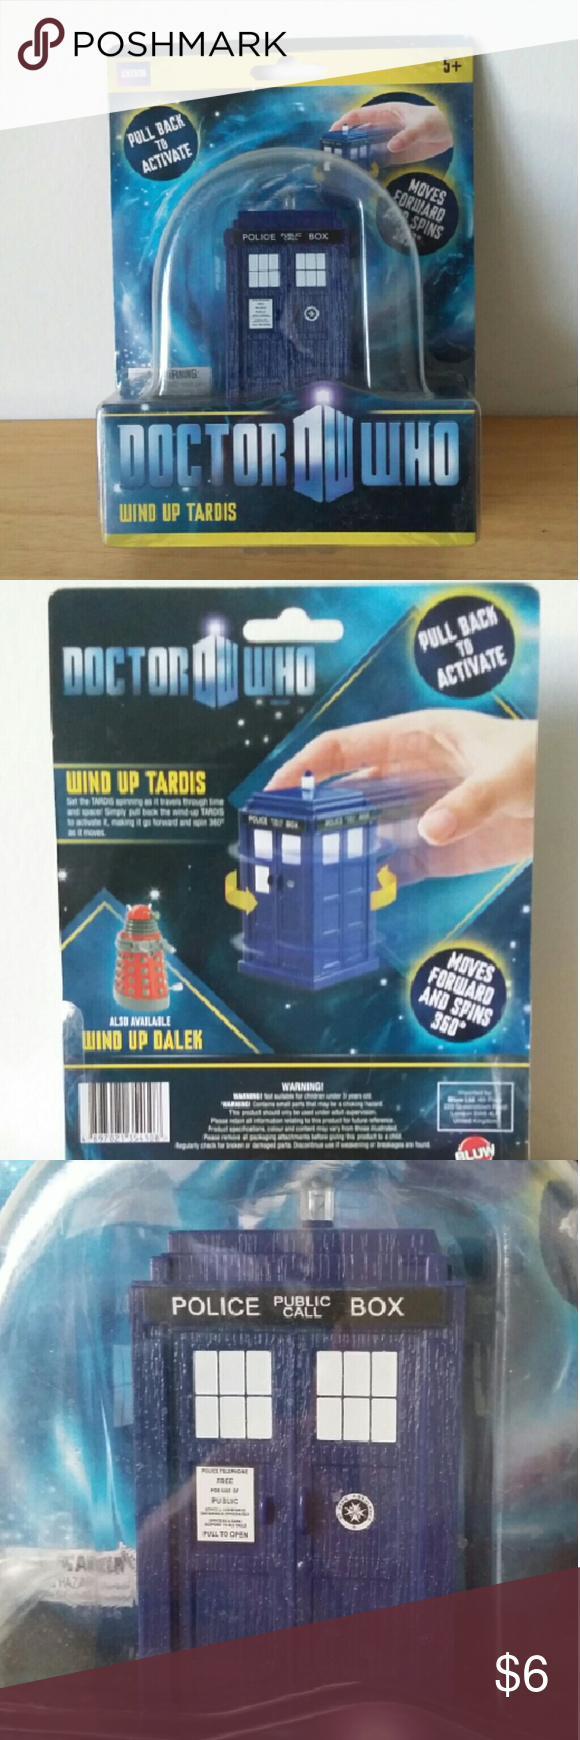 Doctor Who Wind-up TARDIS BRAND NEW